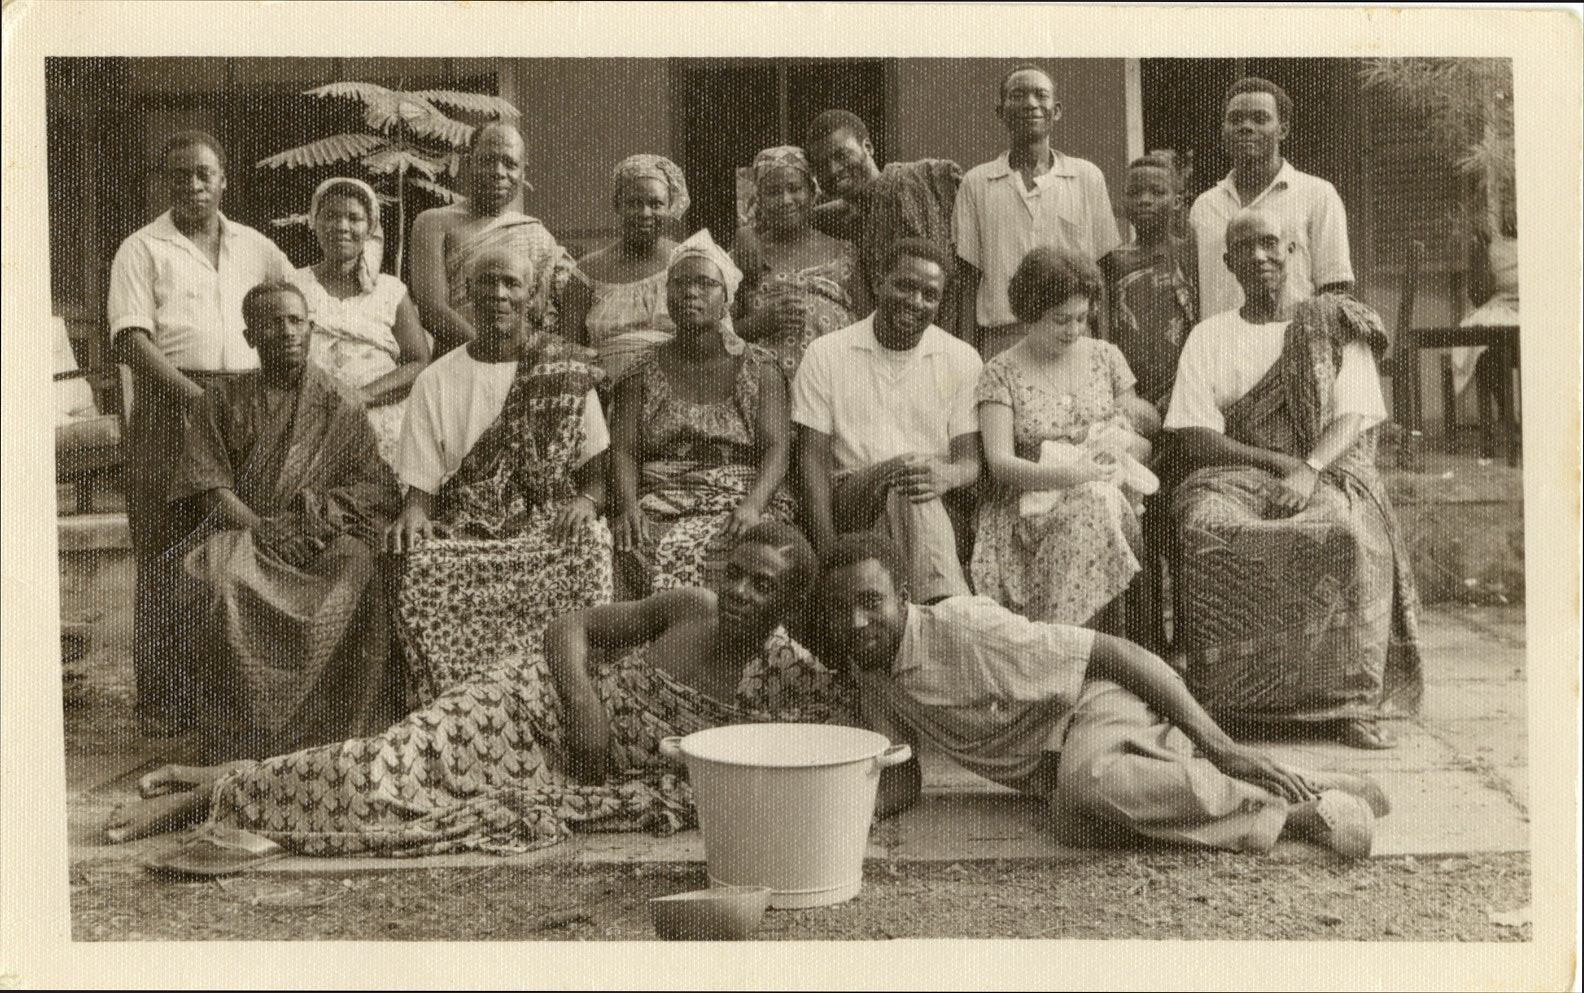 Ana Livia Cordero with others in Ghana